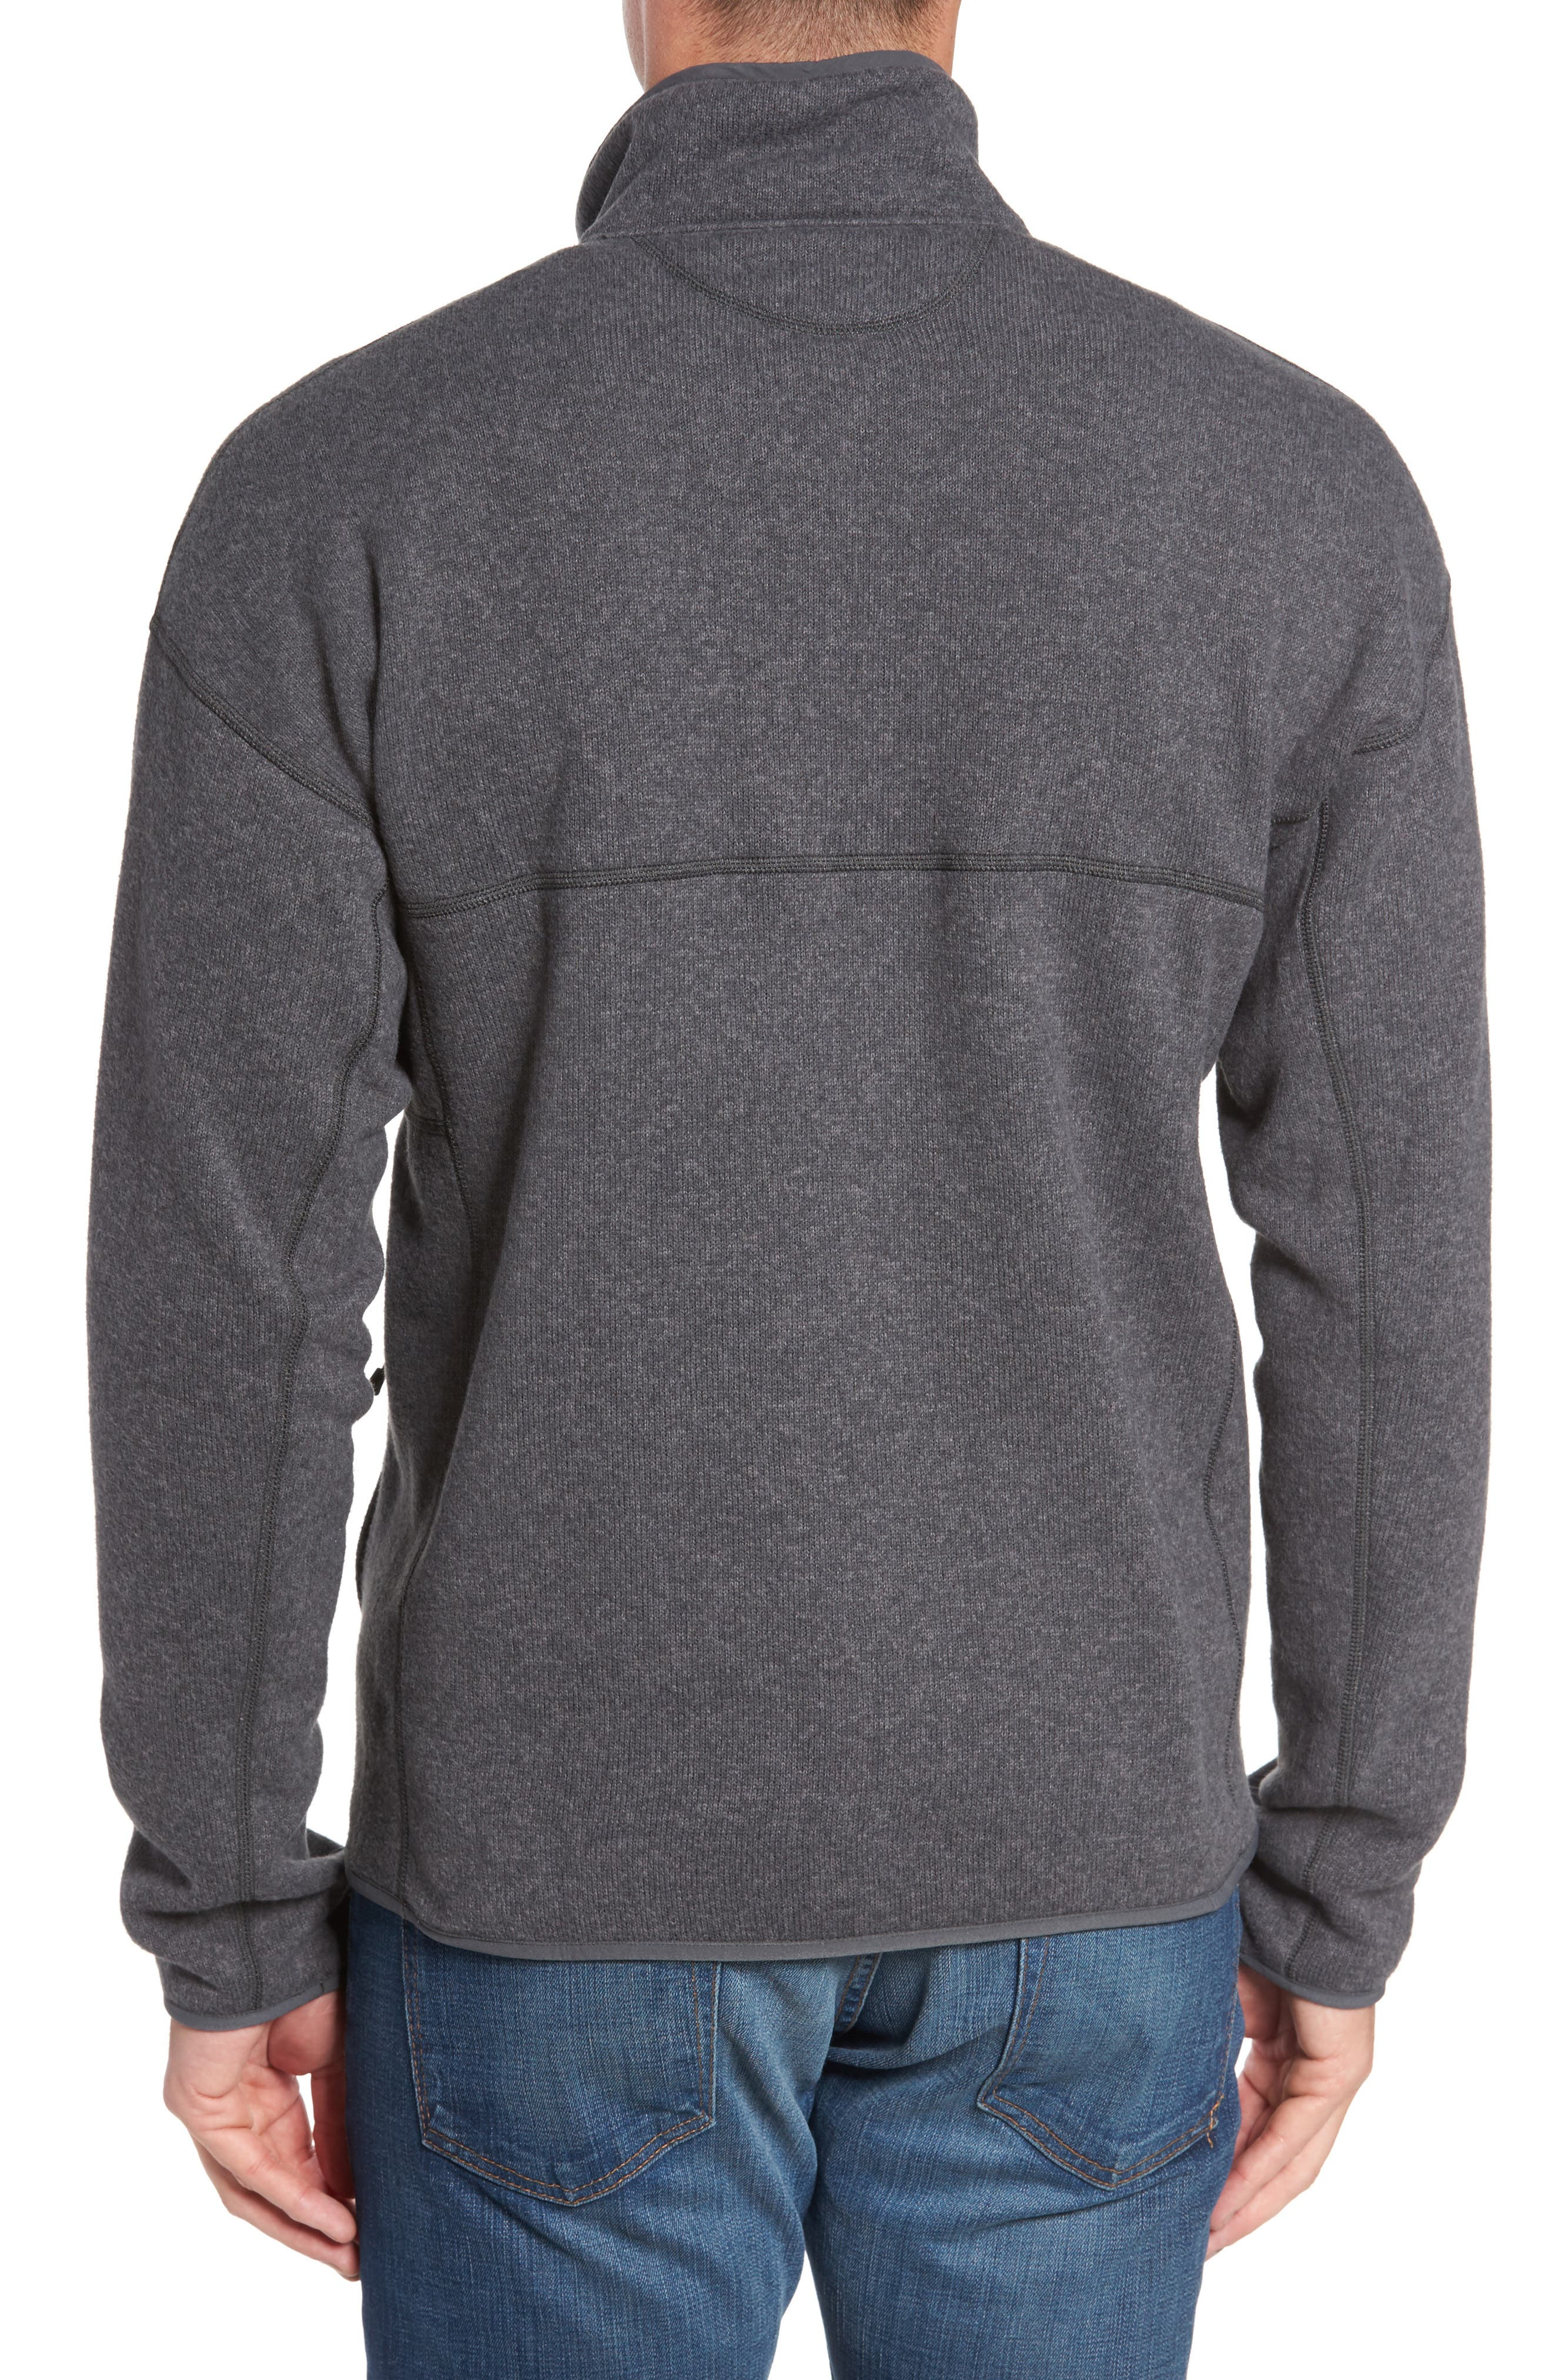 Lightweight Better Sweater Pullover,                             Alternate thumbnail 2, color,                             FORGE GREY